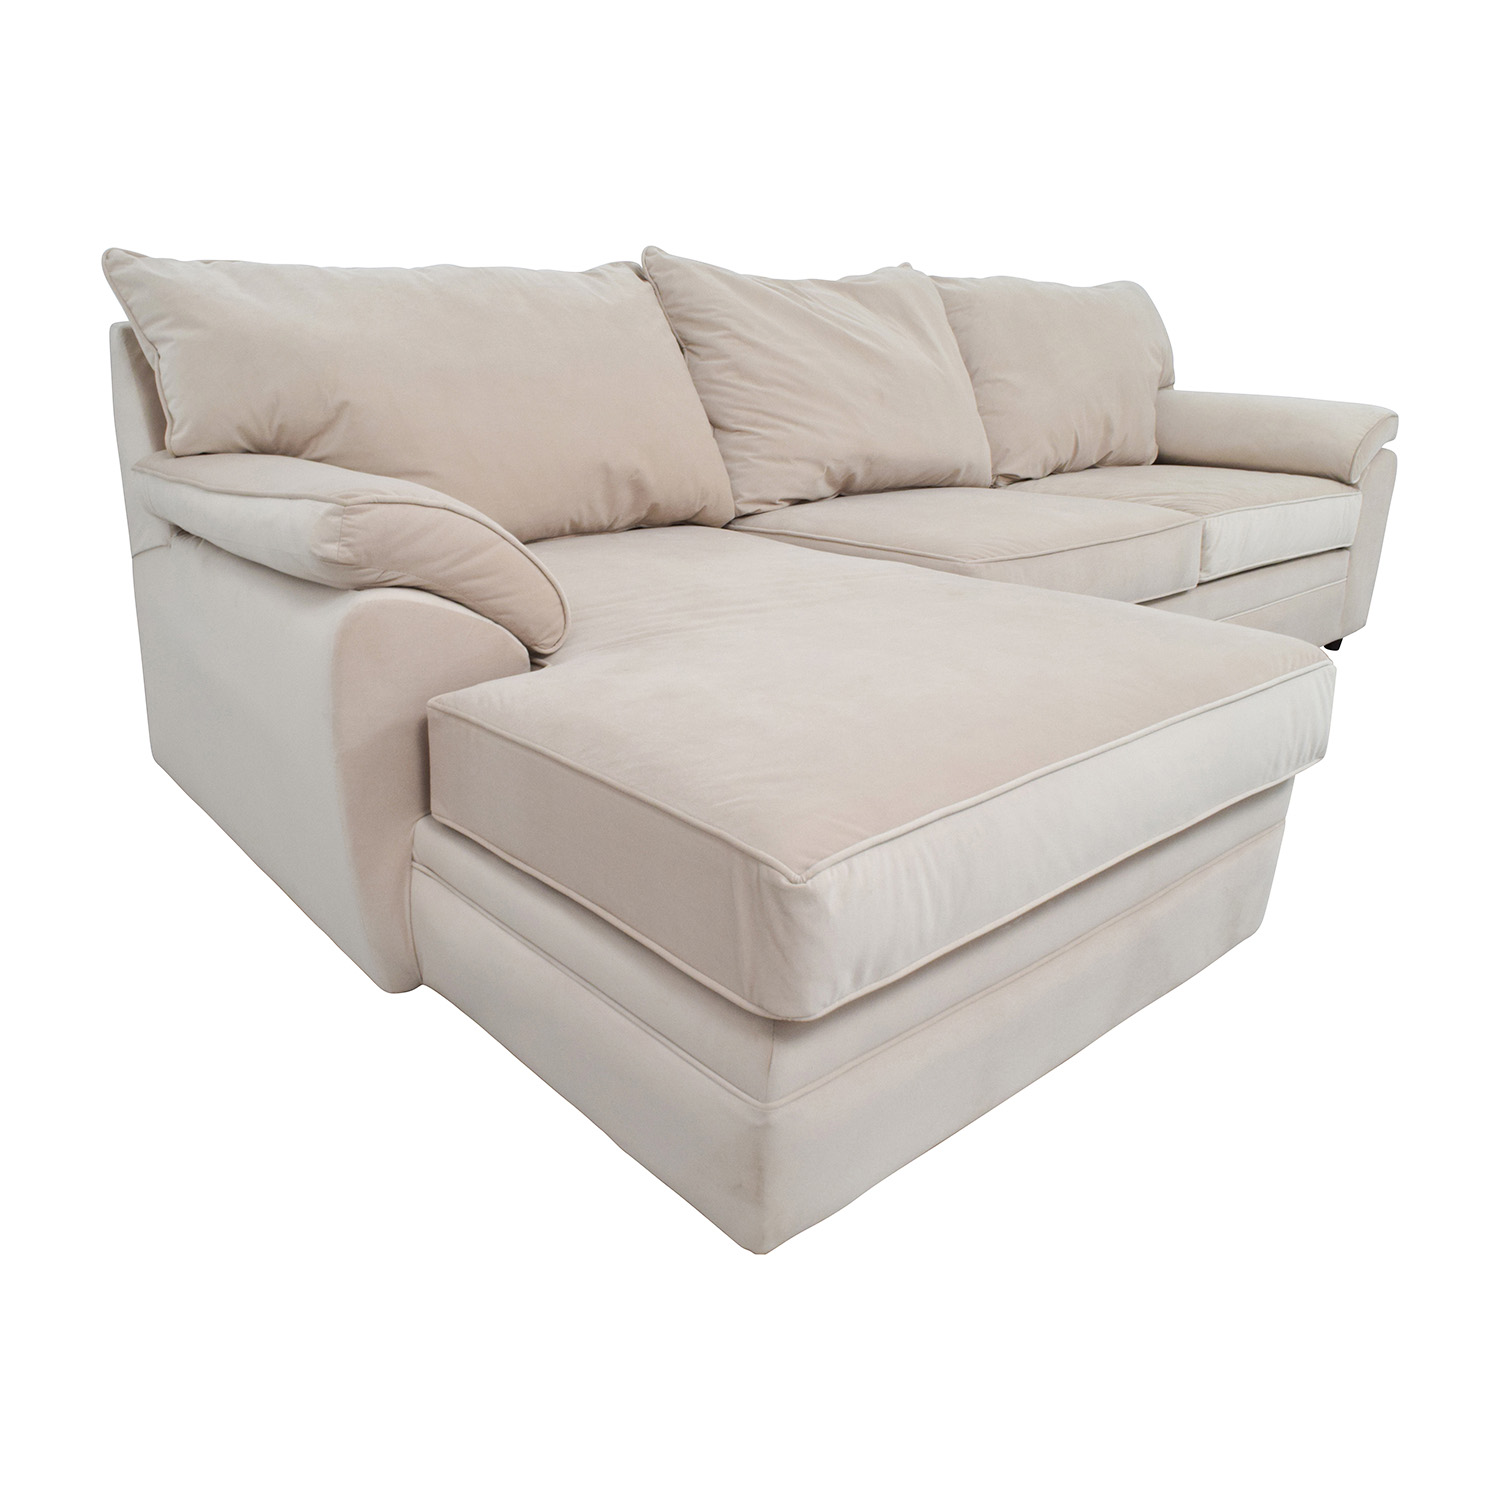 33% OFF Bob s Furniture Bob Furniture f White Right